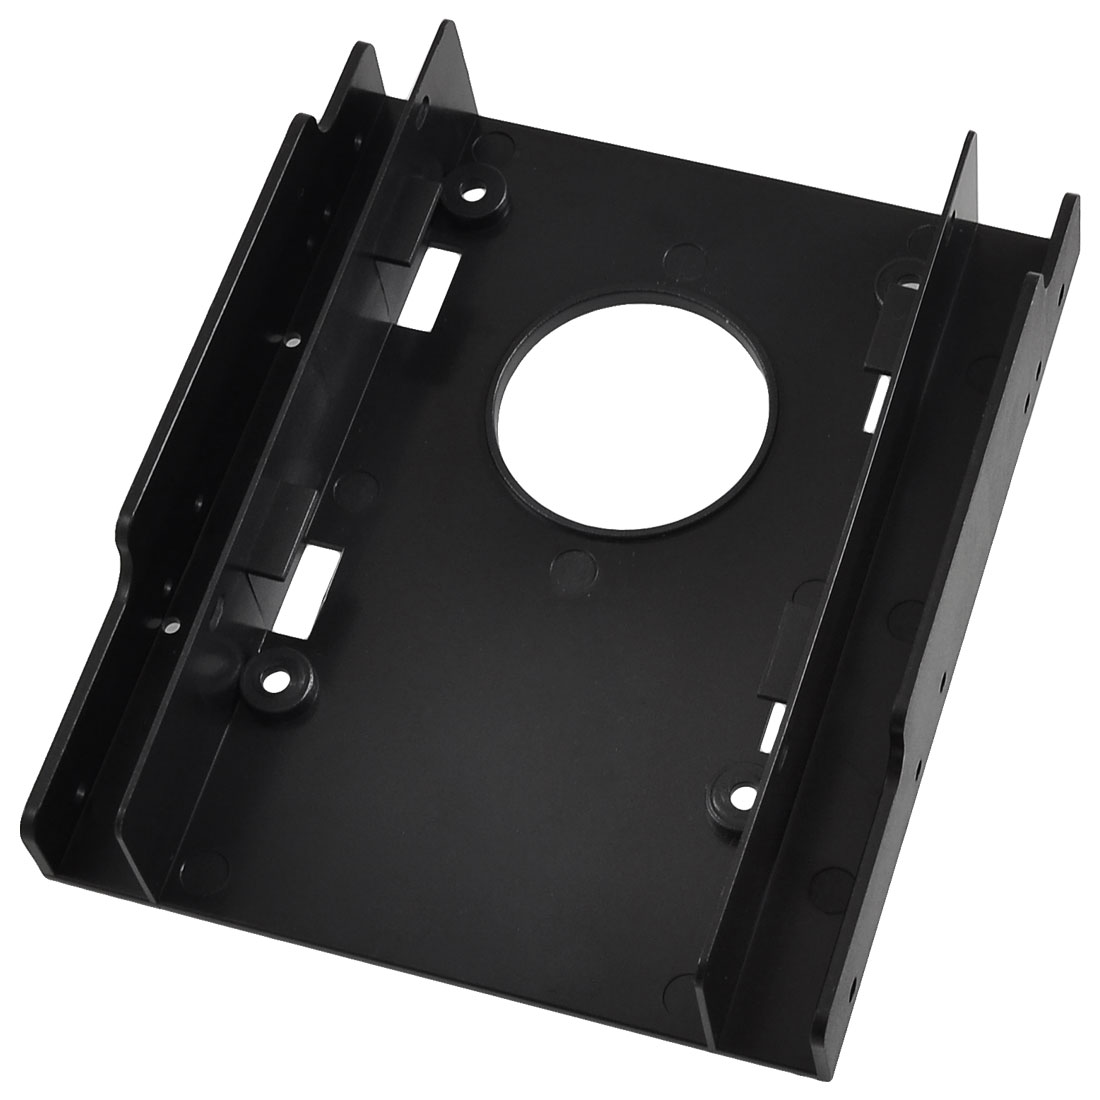 "Black Plastic 2.5"" Frame SSD Bracket Desktop PC HDD"